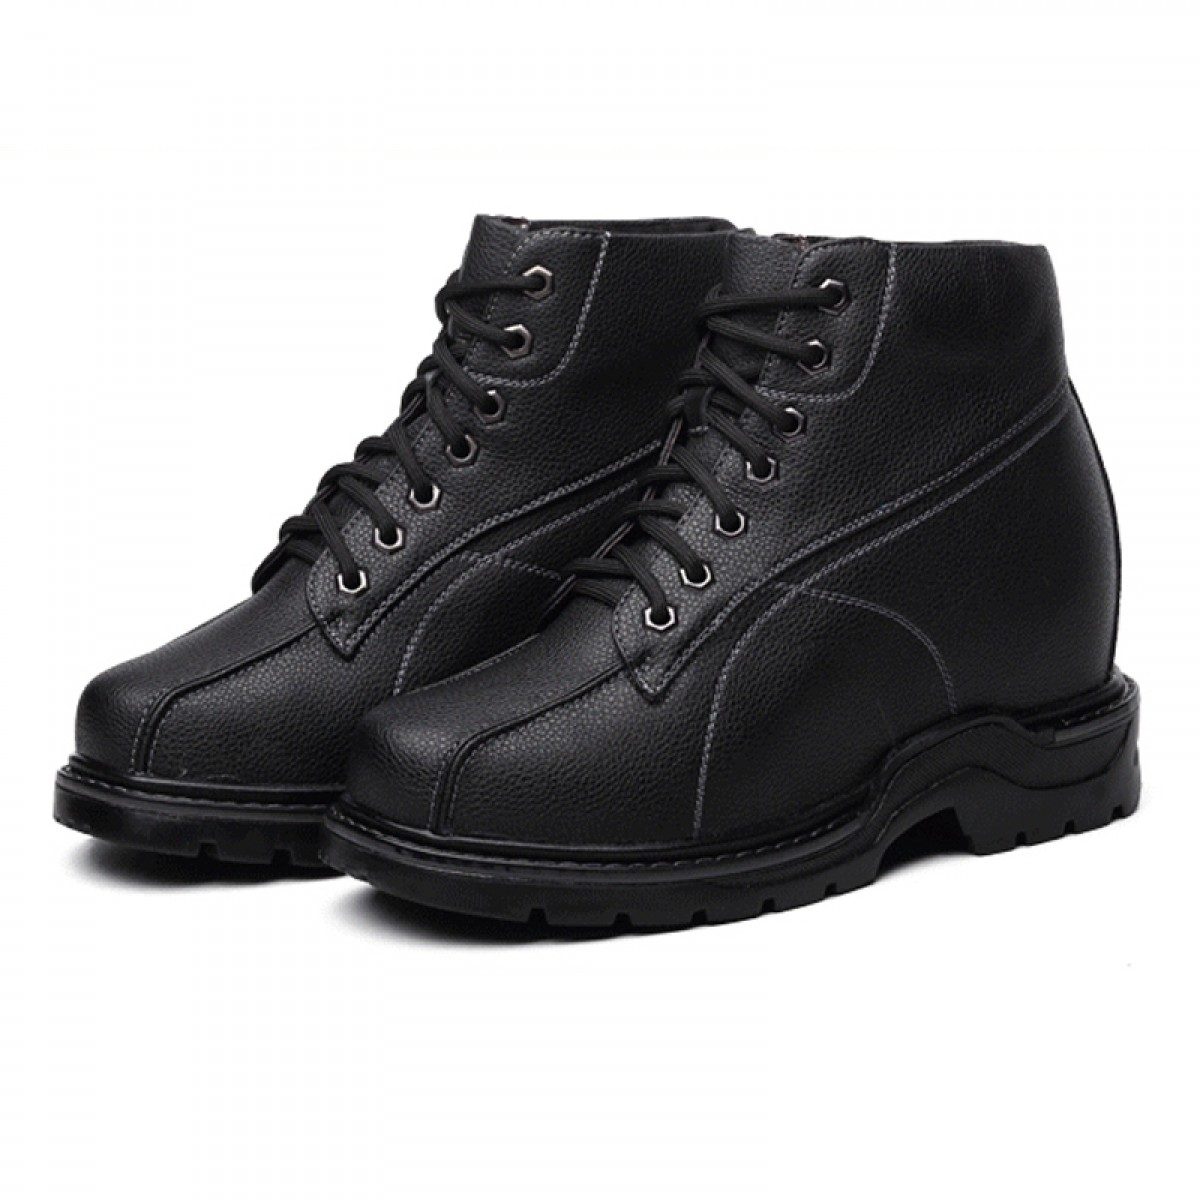 Cheap Black Combat Boots ixAXDFQc